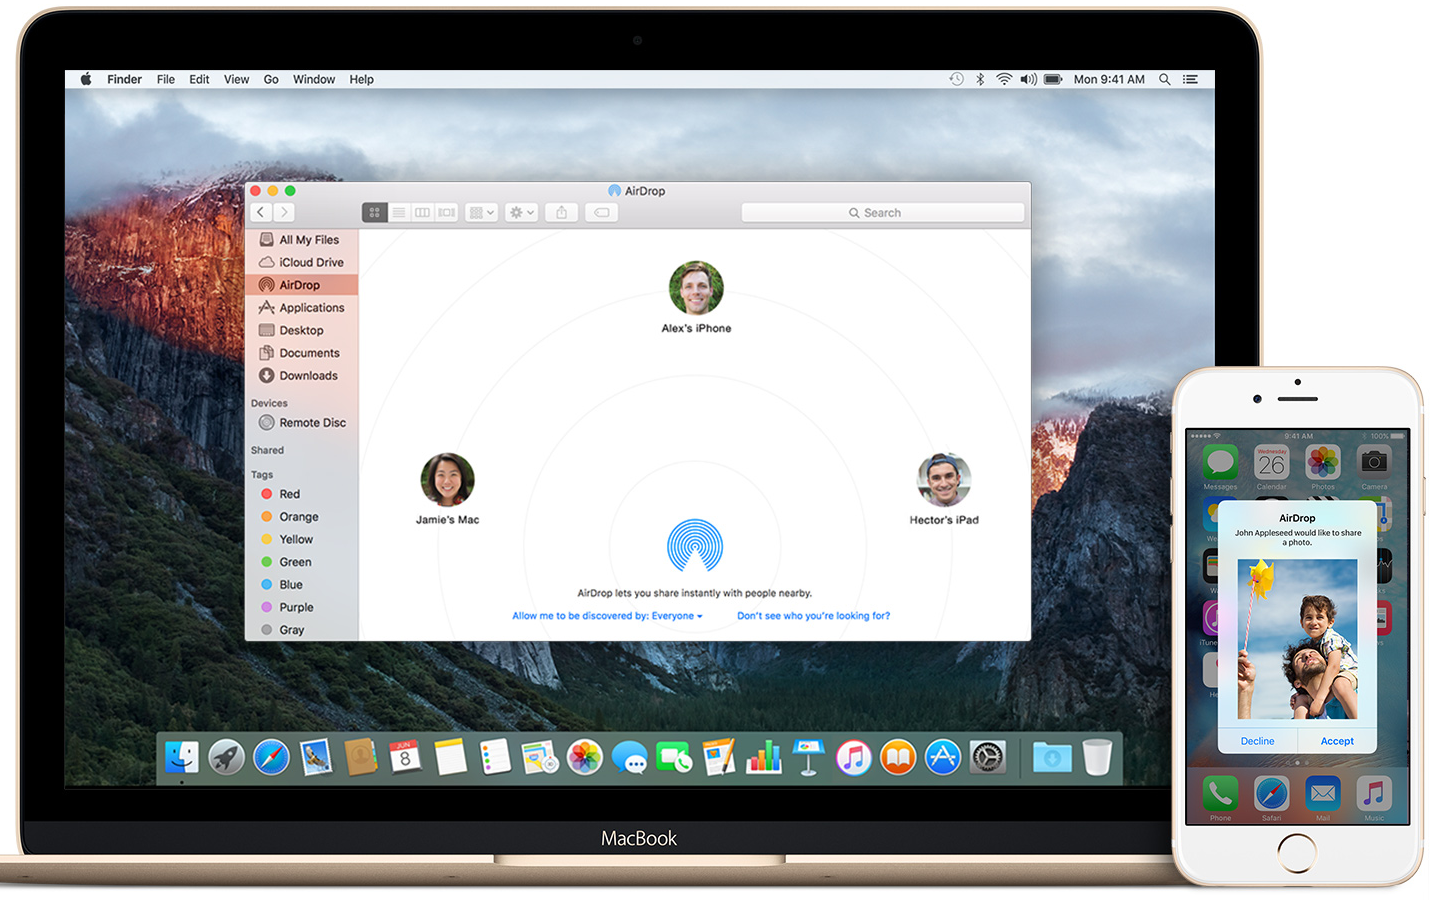 Transfer Mac files to iPhone via AirDrop